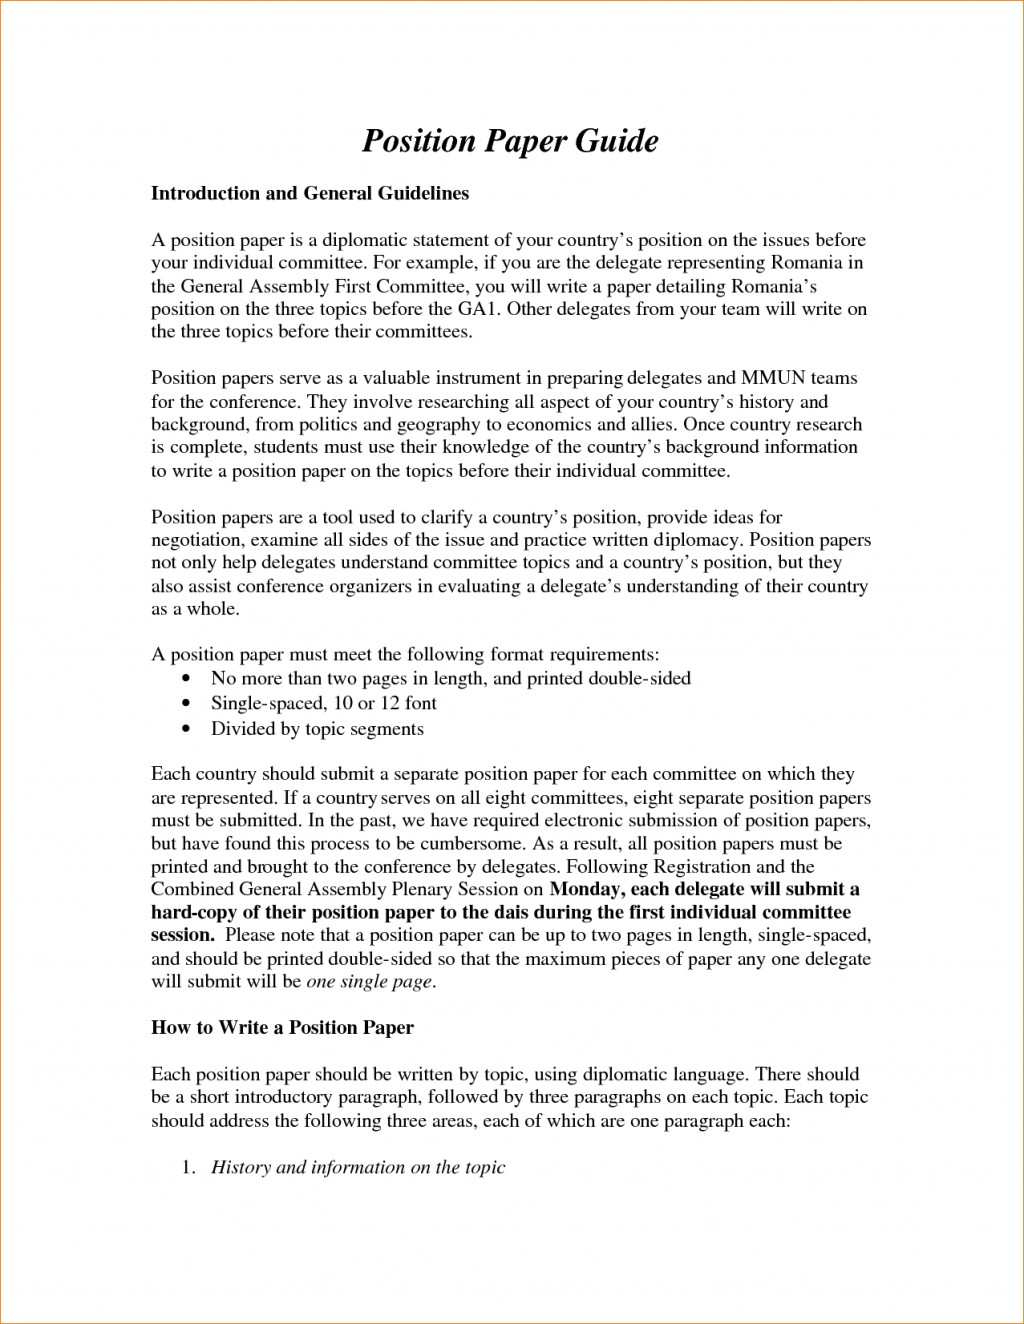 005 Research Paper Proposal Template How To Write Breathtaking A For Topic Example Large